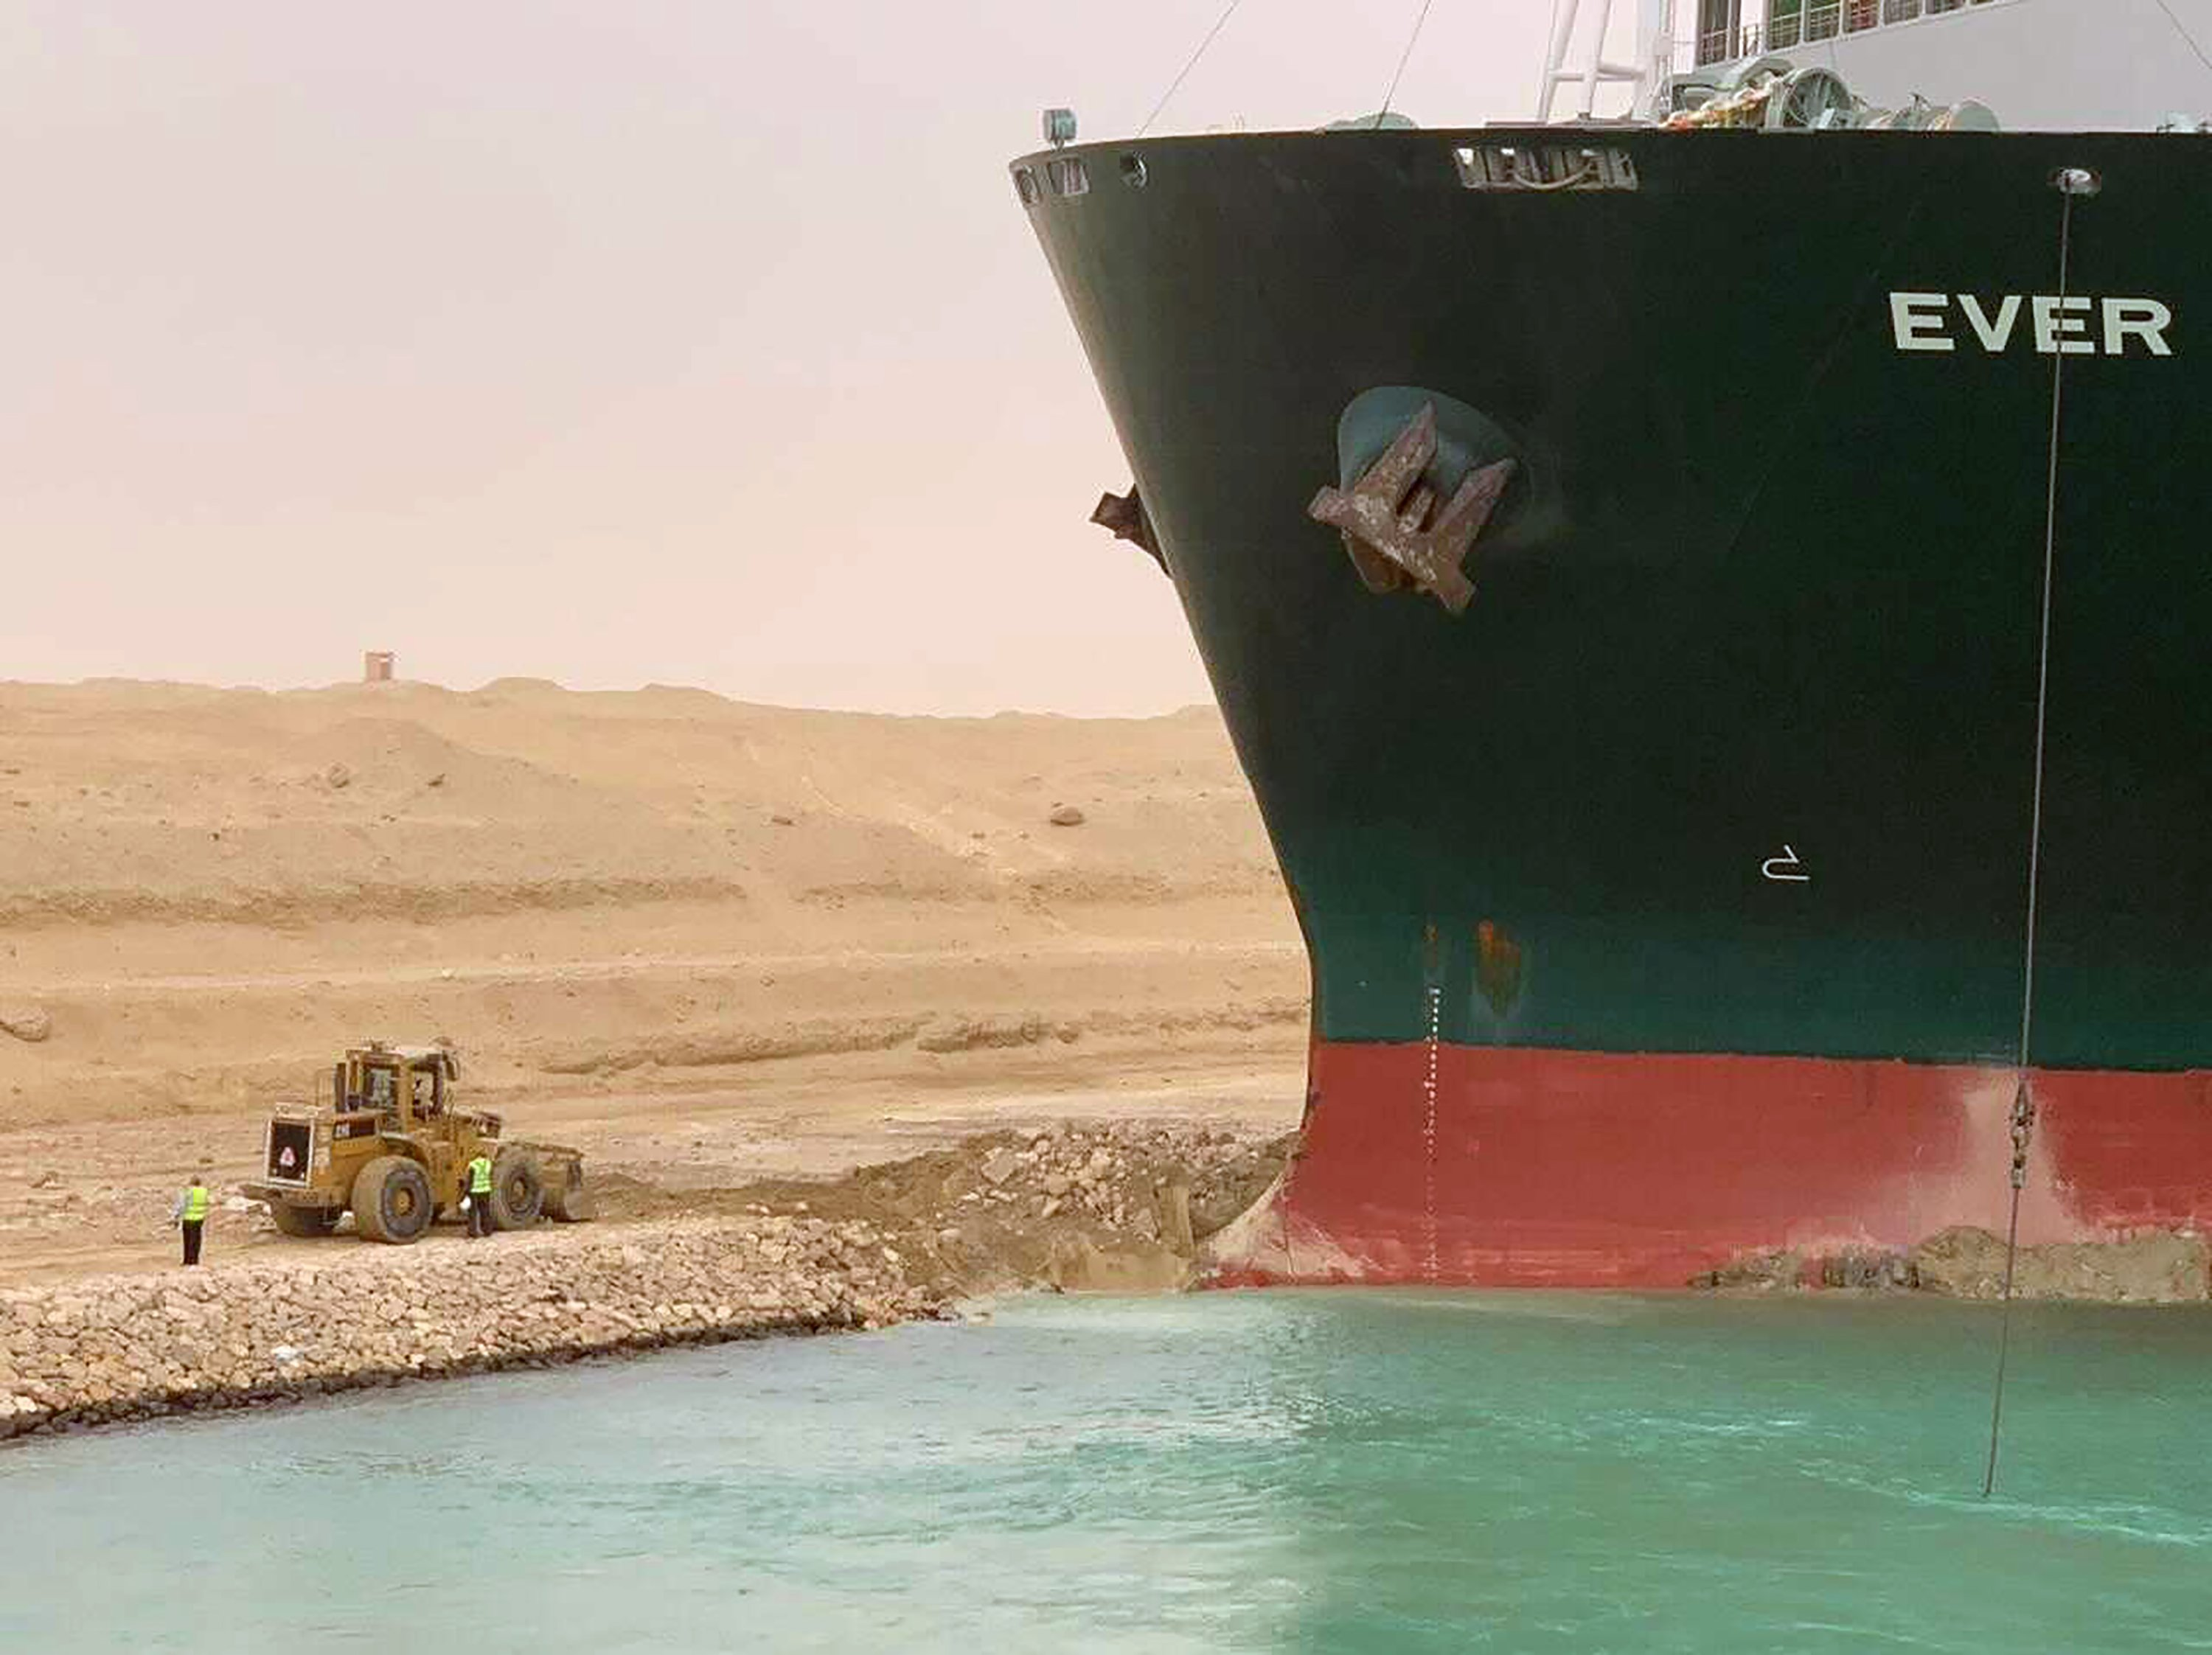 In this photo released by the Suez Canal Authority, a cargo ship, named the Ever Green, sits with its bow stuck into the wall Wednesday, March 24, 2021, after it turned sideways in Egypt's Suez Canal. (Suez Canal Authority via AP)